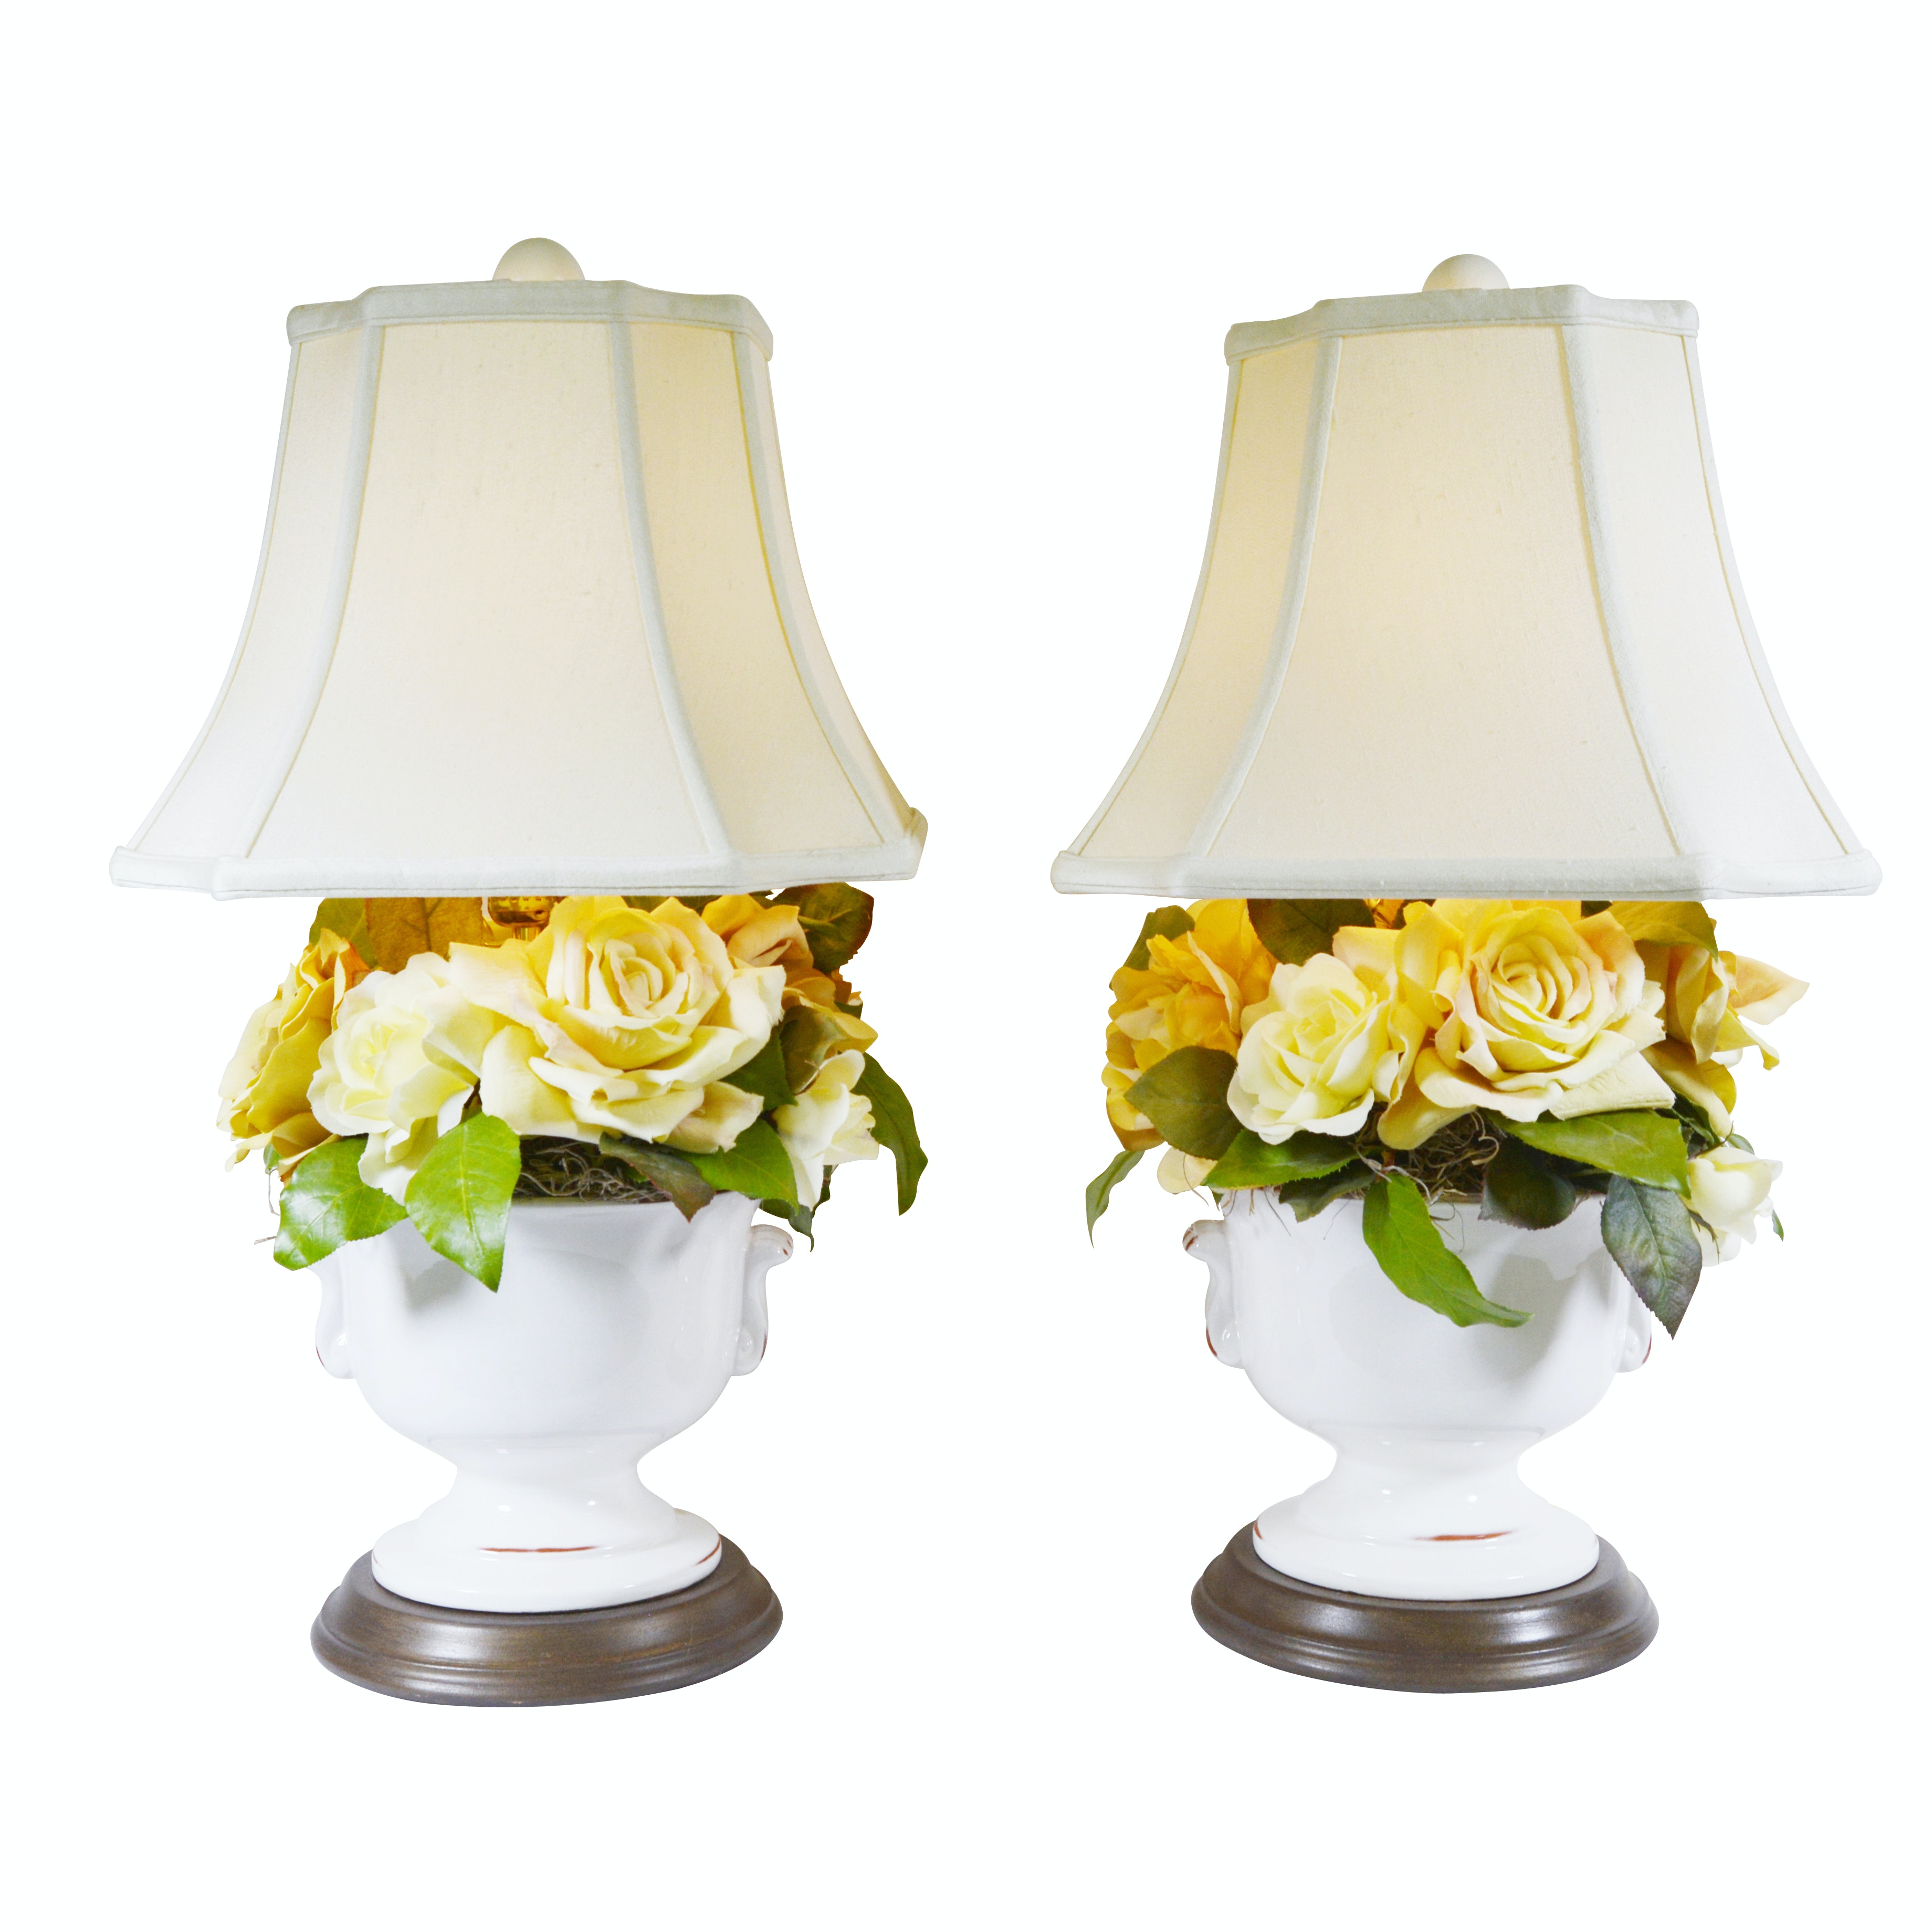 Signed Ceramic Table Lamps from Camargo Trading Company